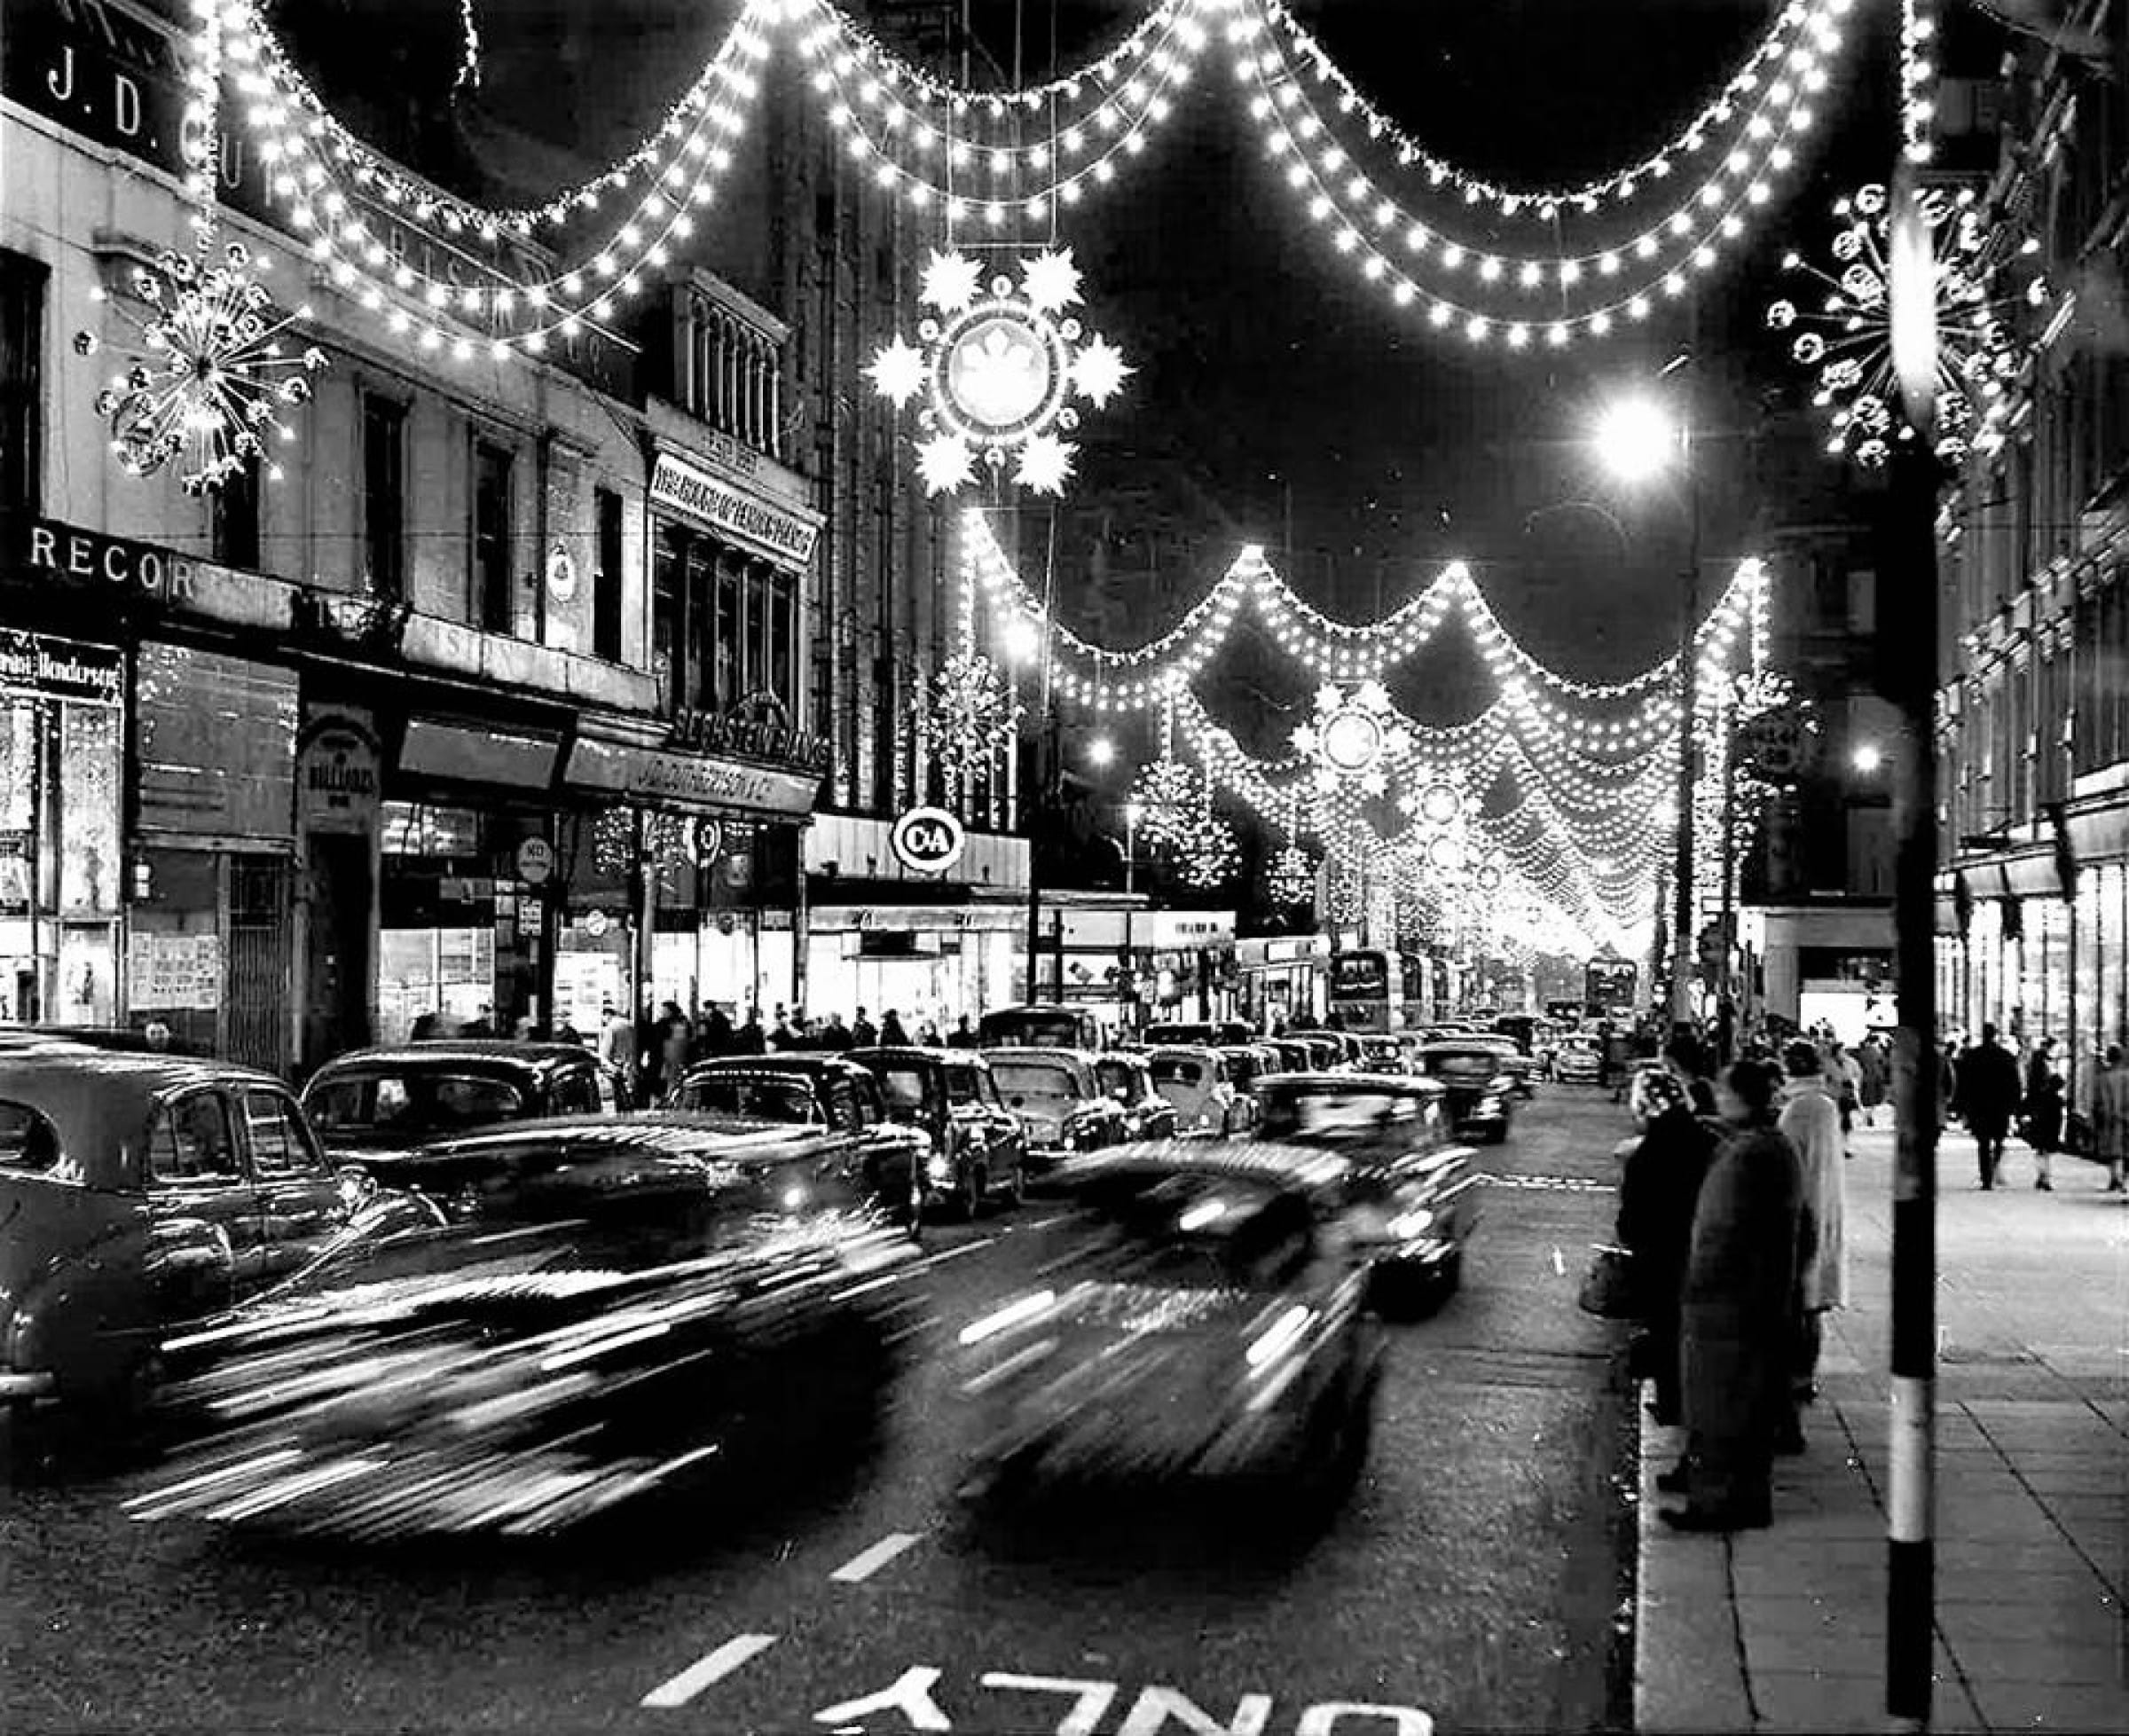 Let there be light! (Sauchiehall Street, December 1962 (Newsquest Media Group))